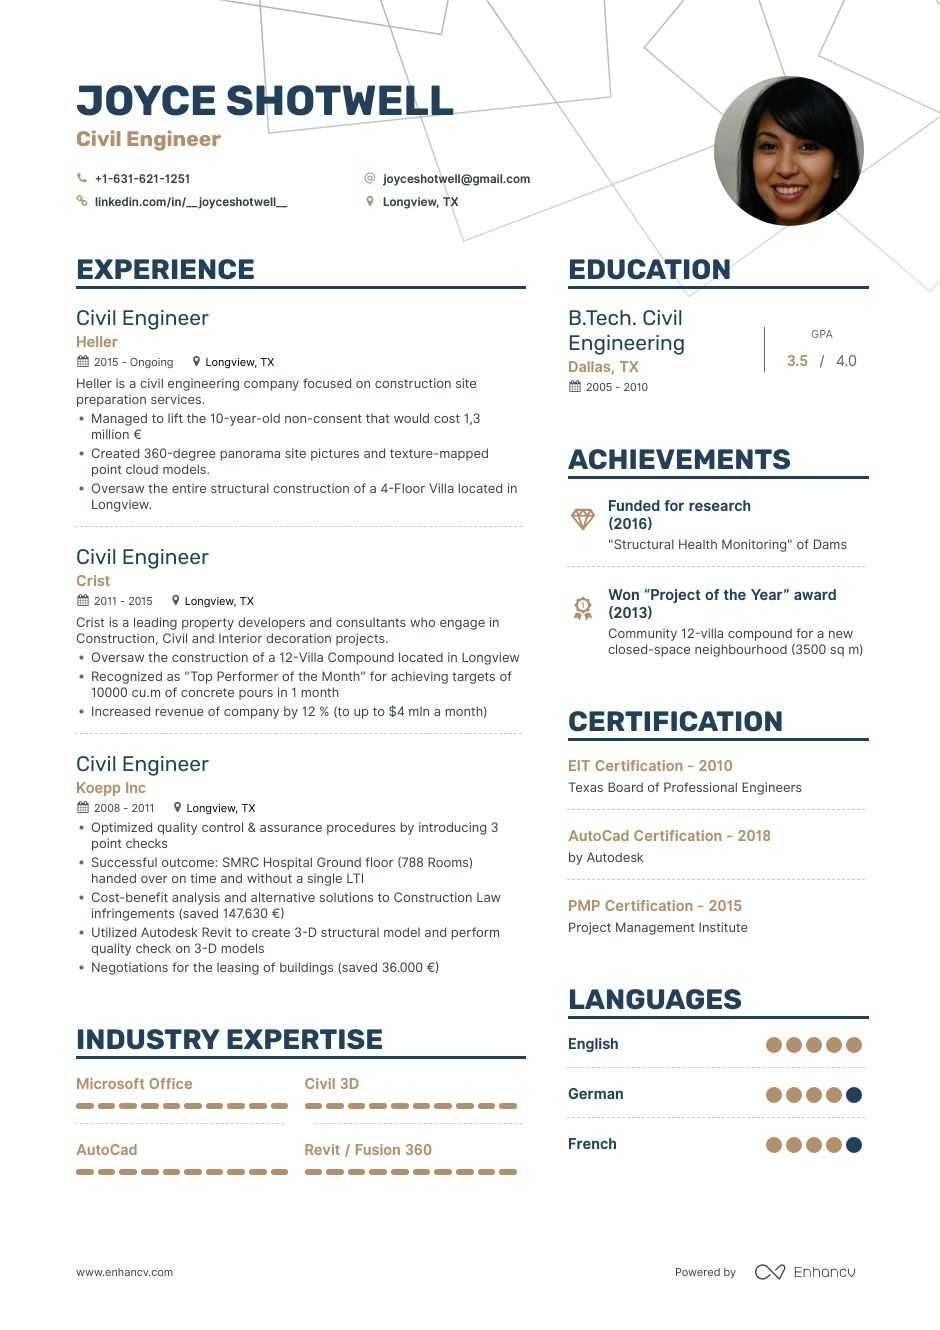 civil engineer resume examples guide pro tips enhancv format for engineering students Resume Resume Format For Civil Engineering Students